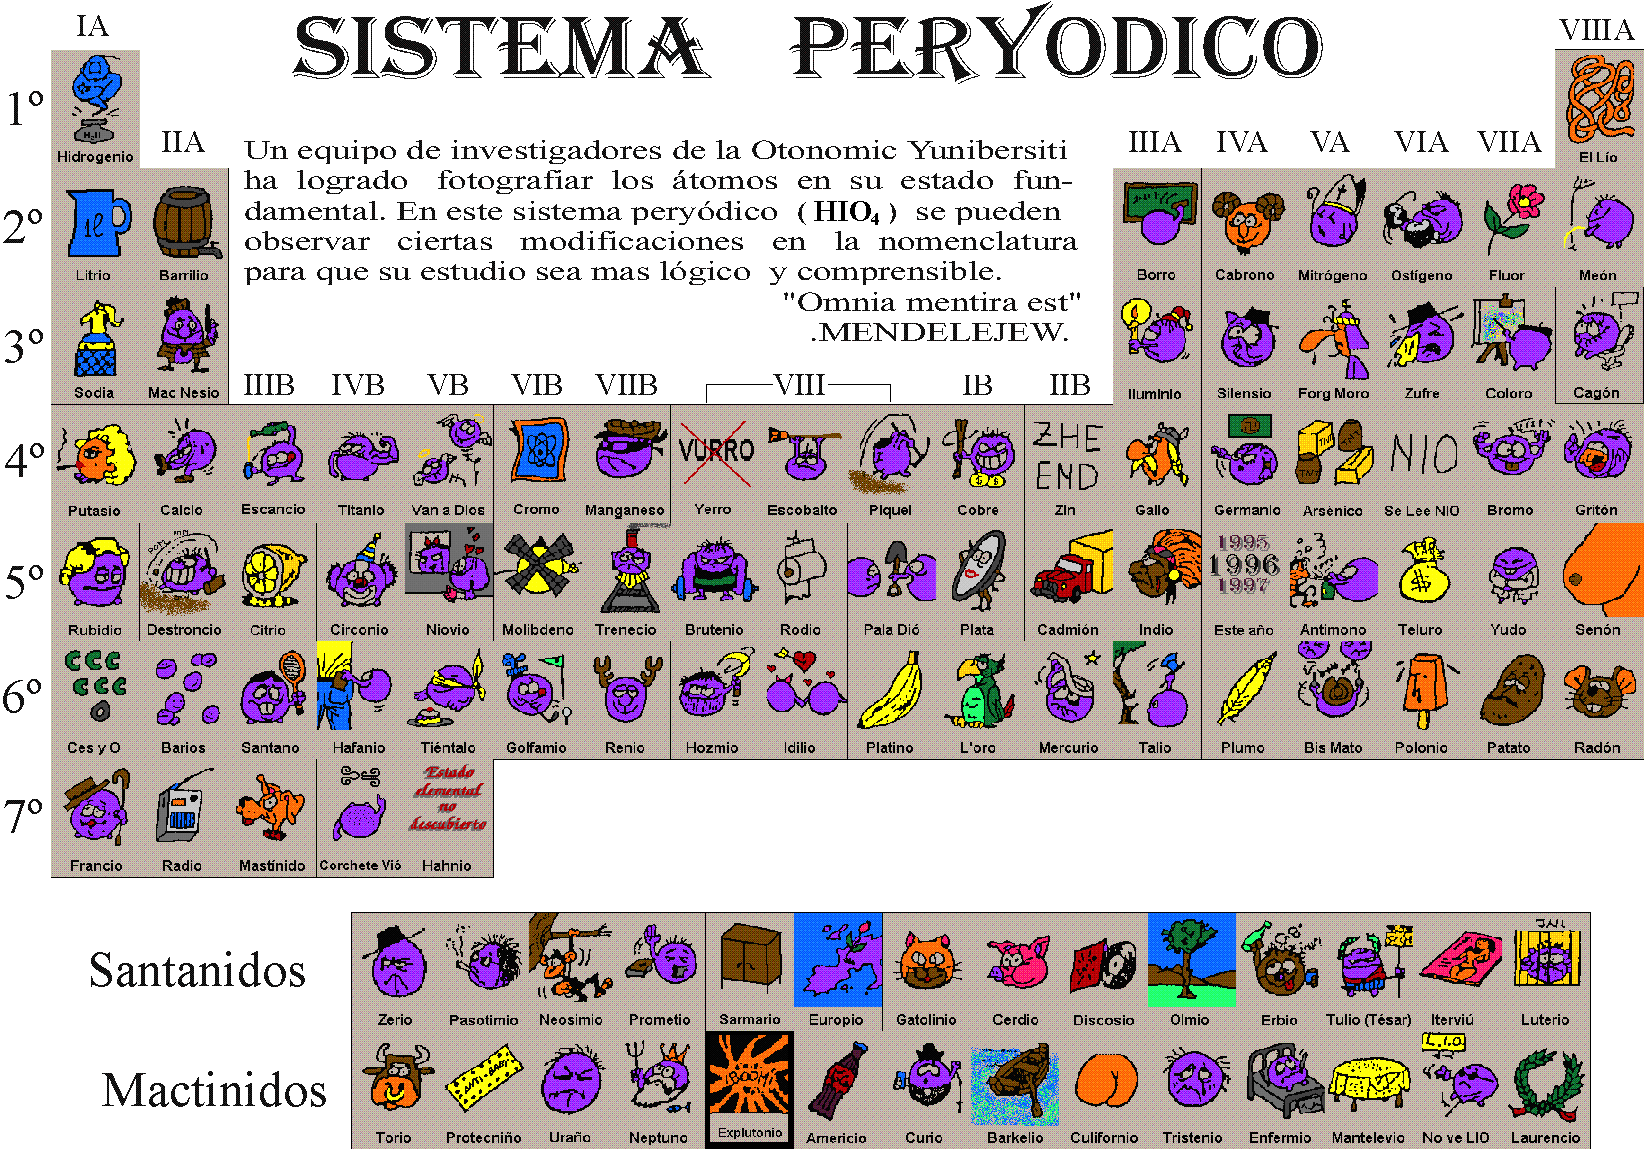 Periodic table in pictures gallery periodic table images periodic table database chemogenesis a famous spanish periodic table with punsjokes on the element names gamestrikefo gamestrikefo Images